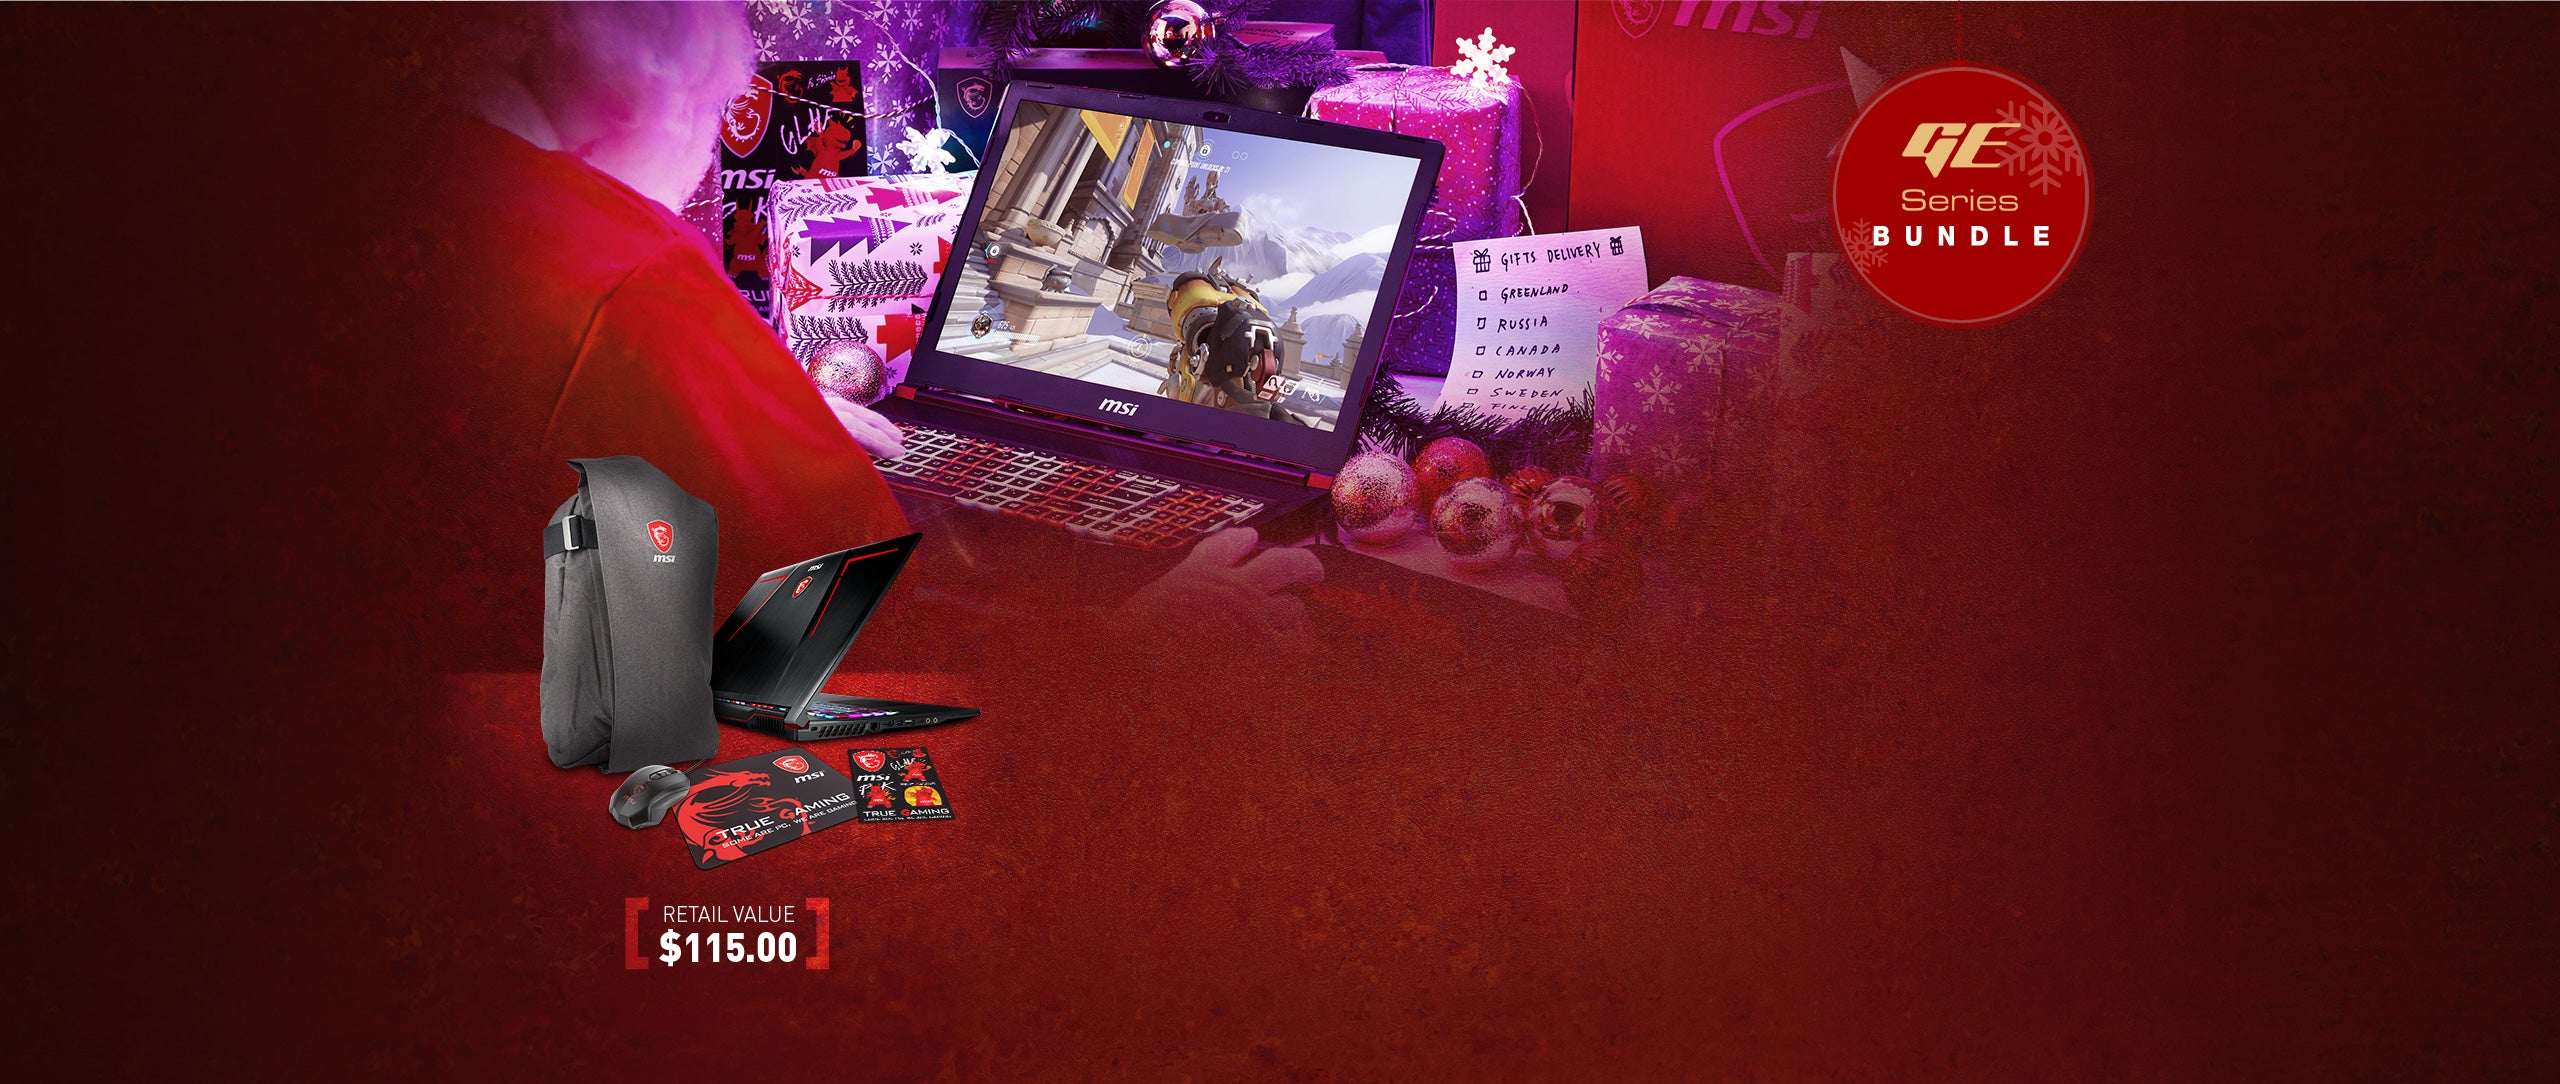 GE Series Bundle. Retail Value $115.00. Image Shows MSI backpack, mouse, mousepad and stickers.